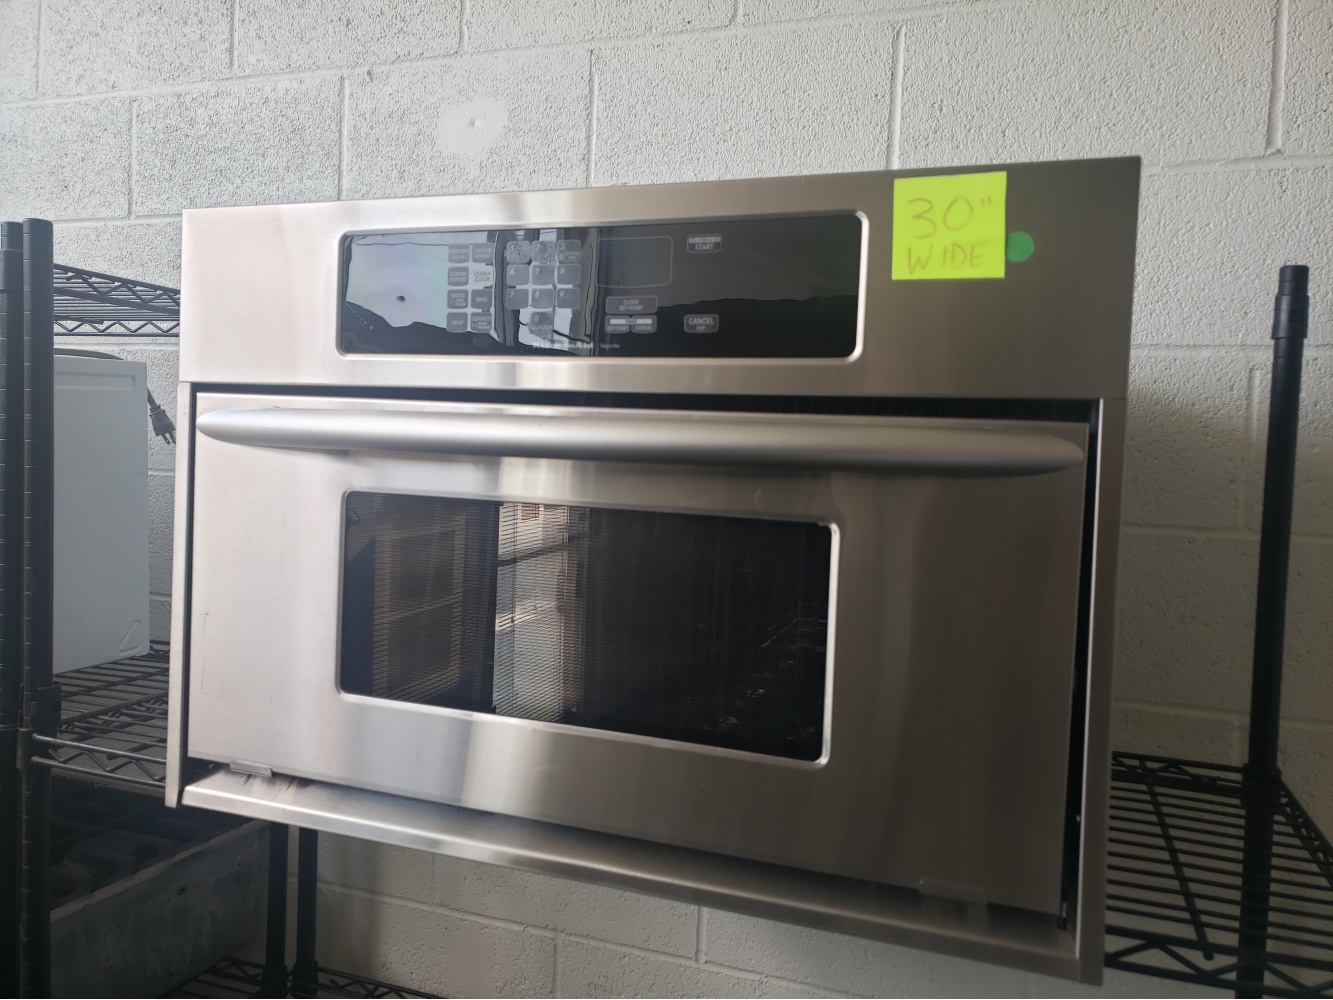 Kitchenaid Superba 30 Built In Microwave Out Of Stock Kimo S Appliances Van Nuys